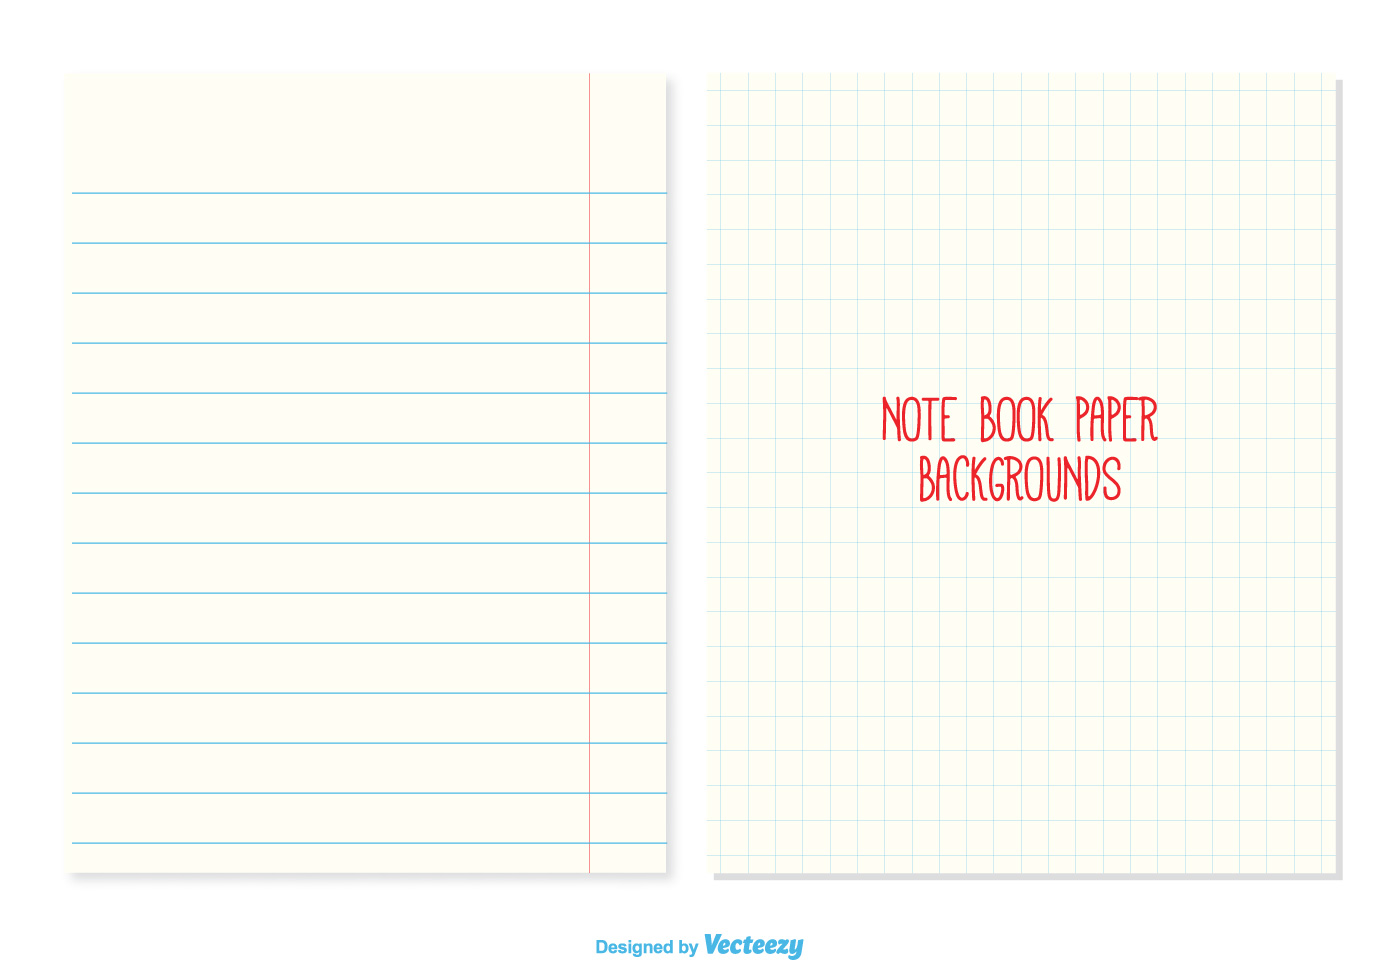 notebook paper backgrounds download free vector art  stock graphics   images vector butterfly clip art black and white vector butterfly images